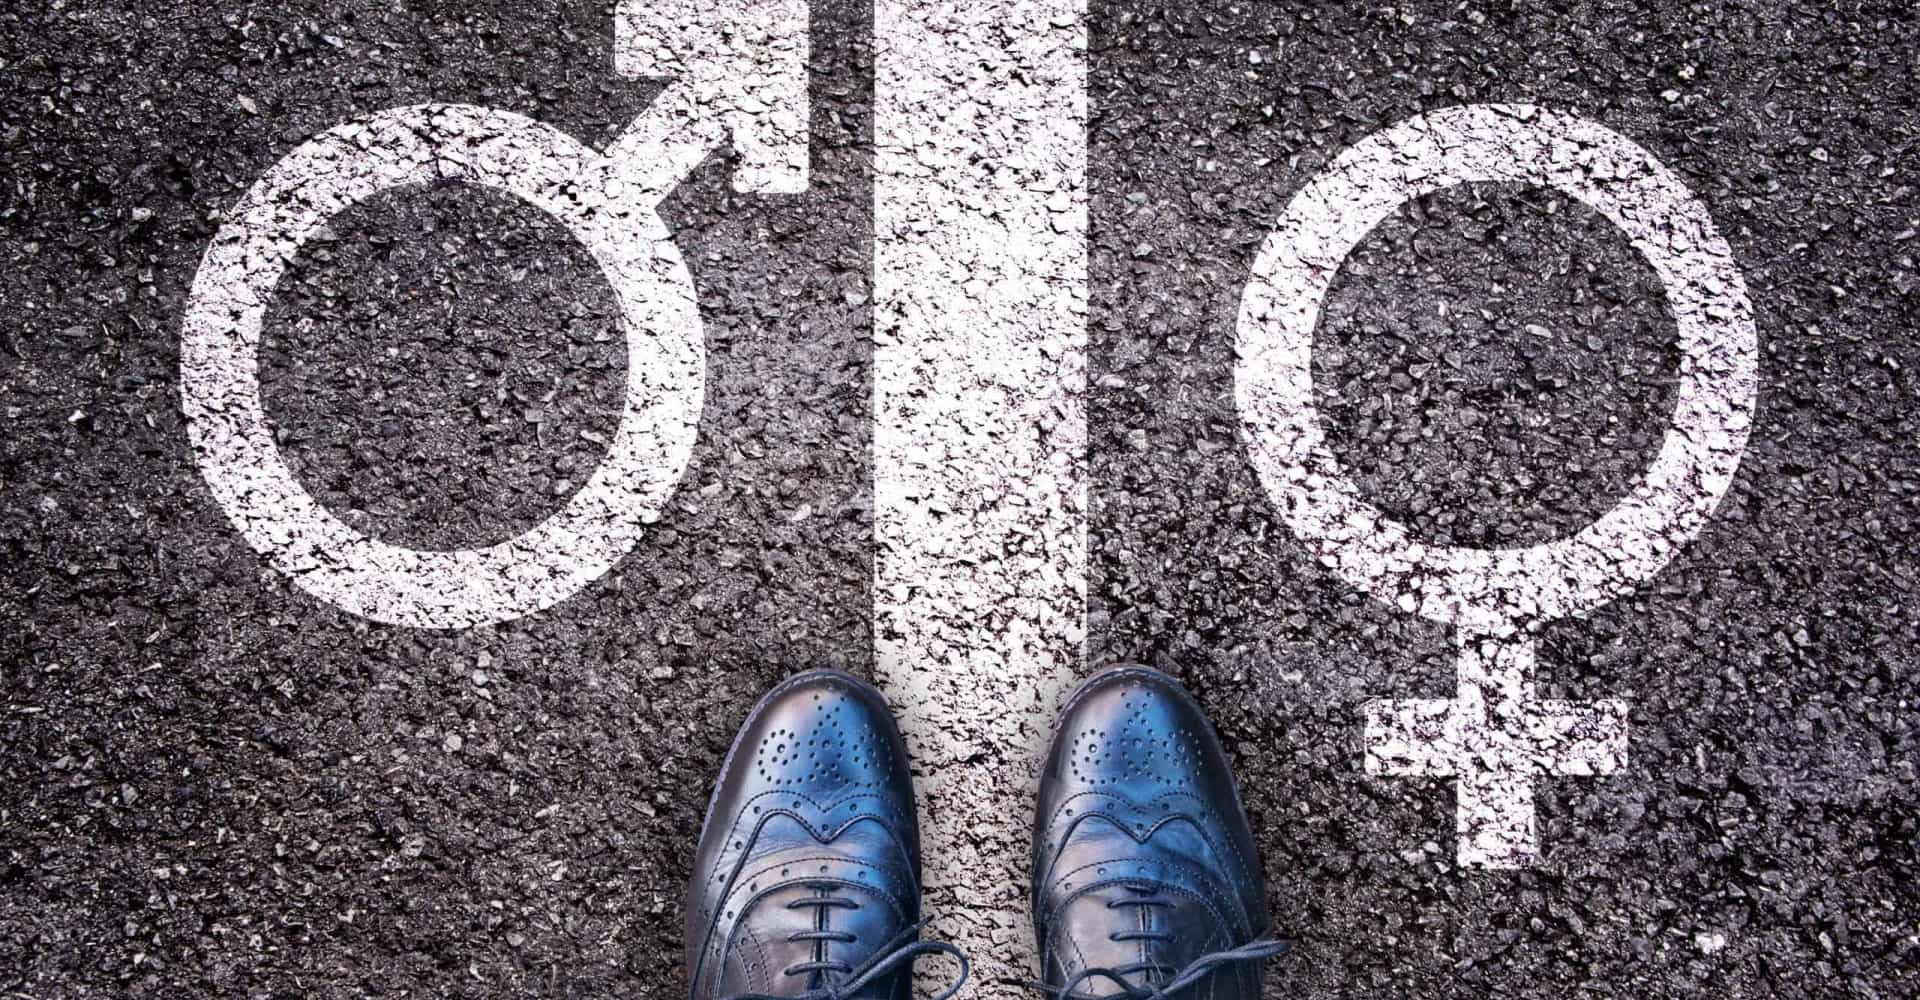 Transgender: overcoming barriers in the face of prejudice and discrimination